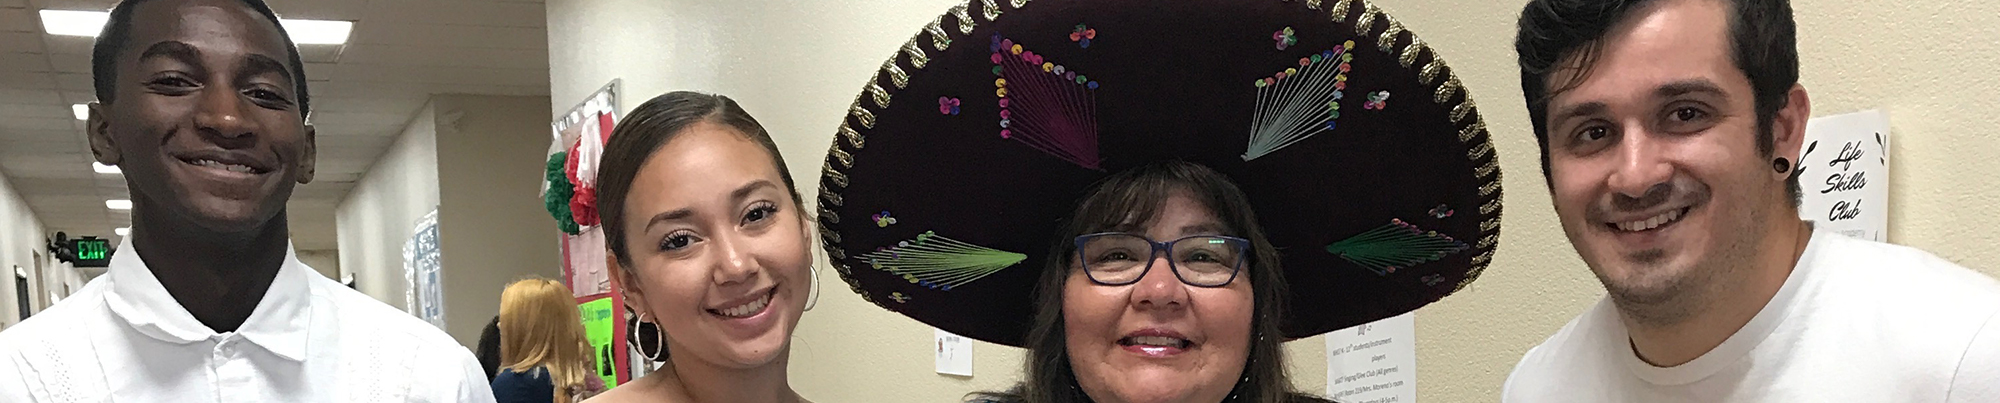 Four teachers smiling, one wearing a sombrero.